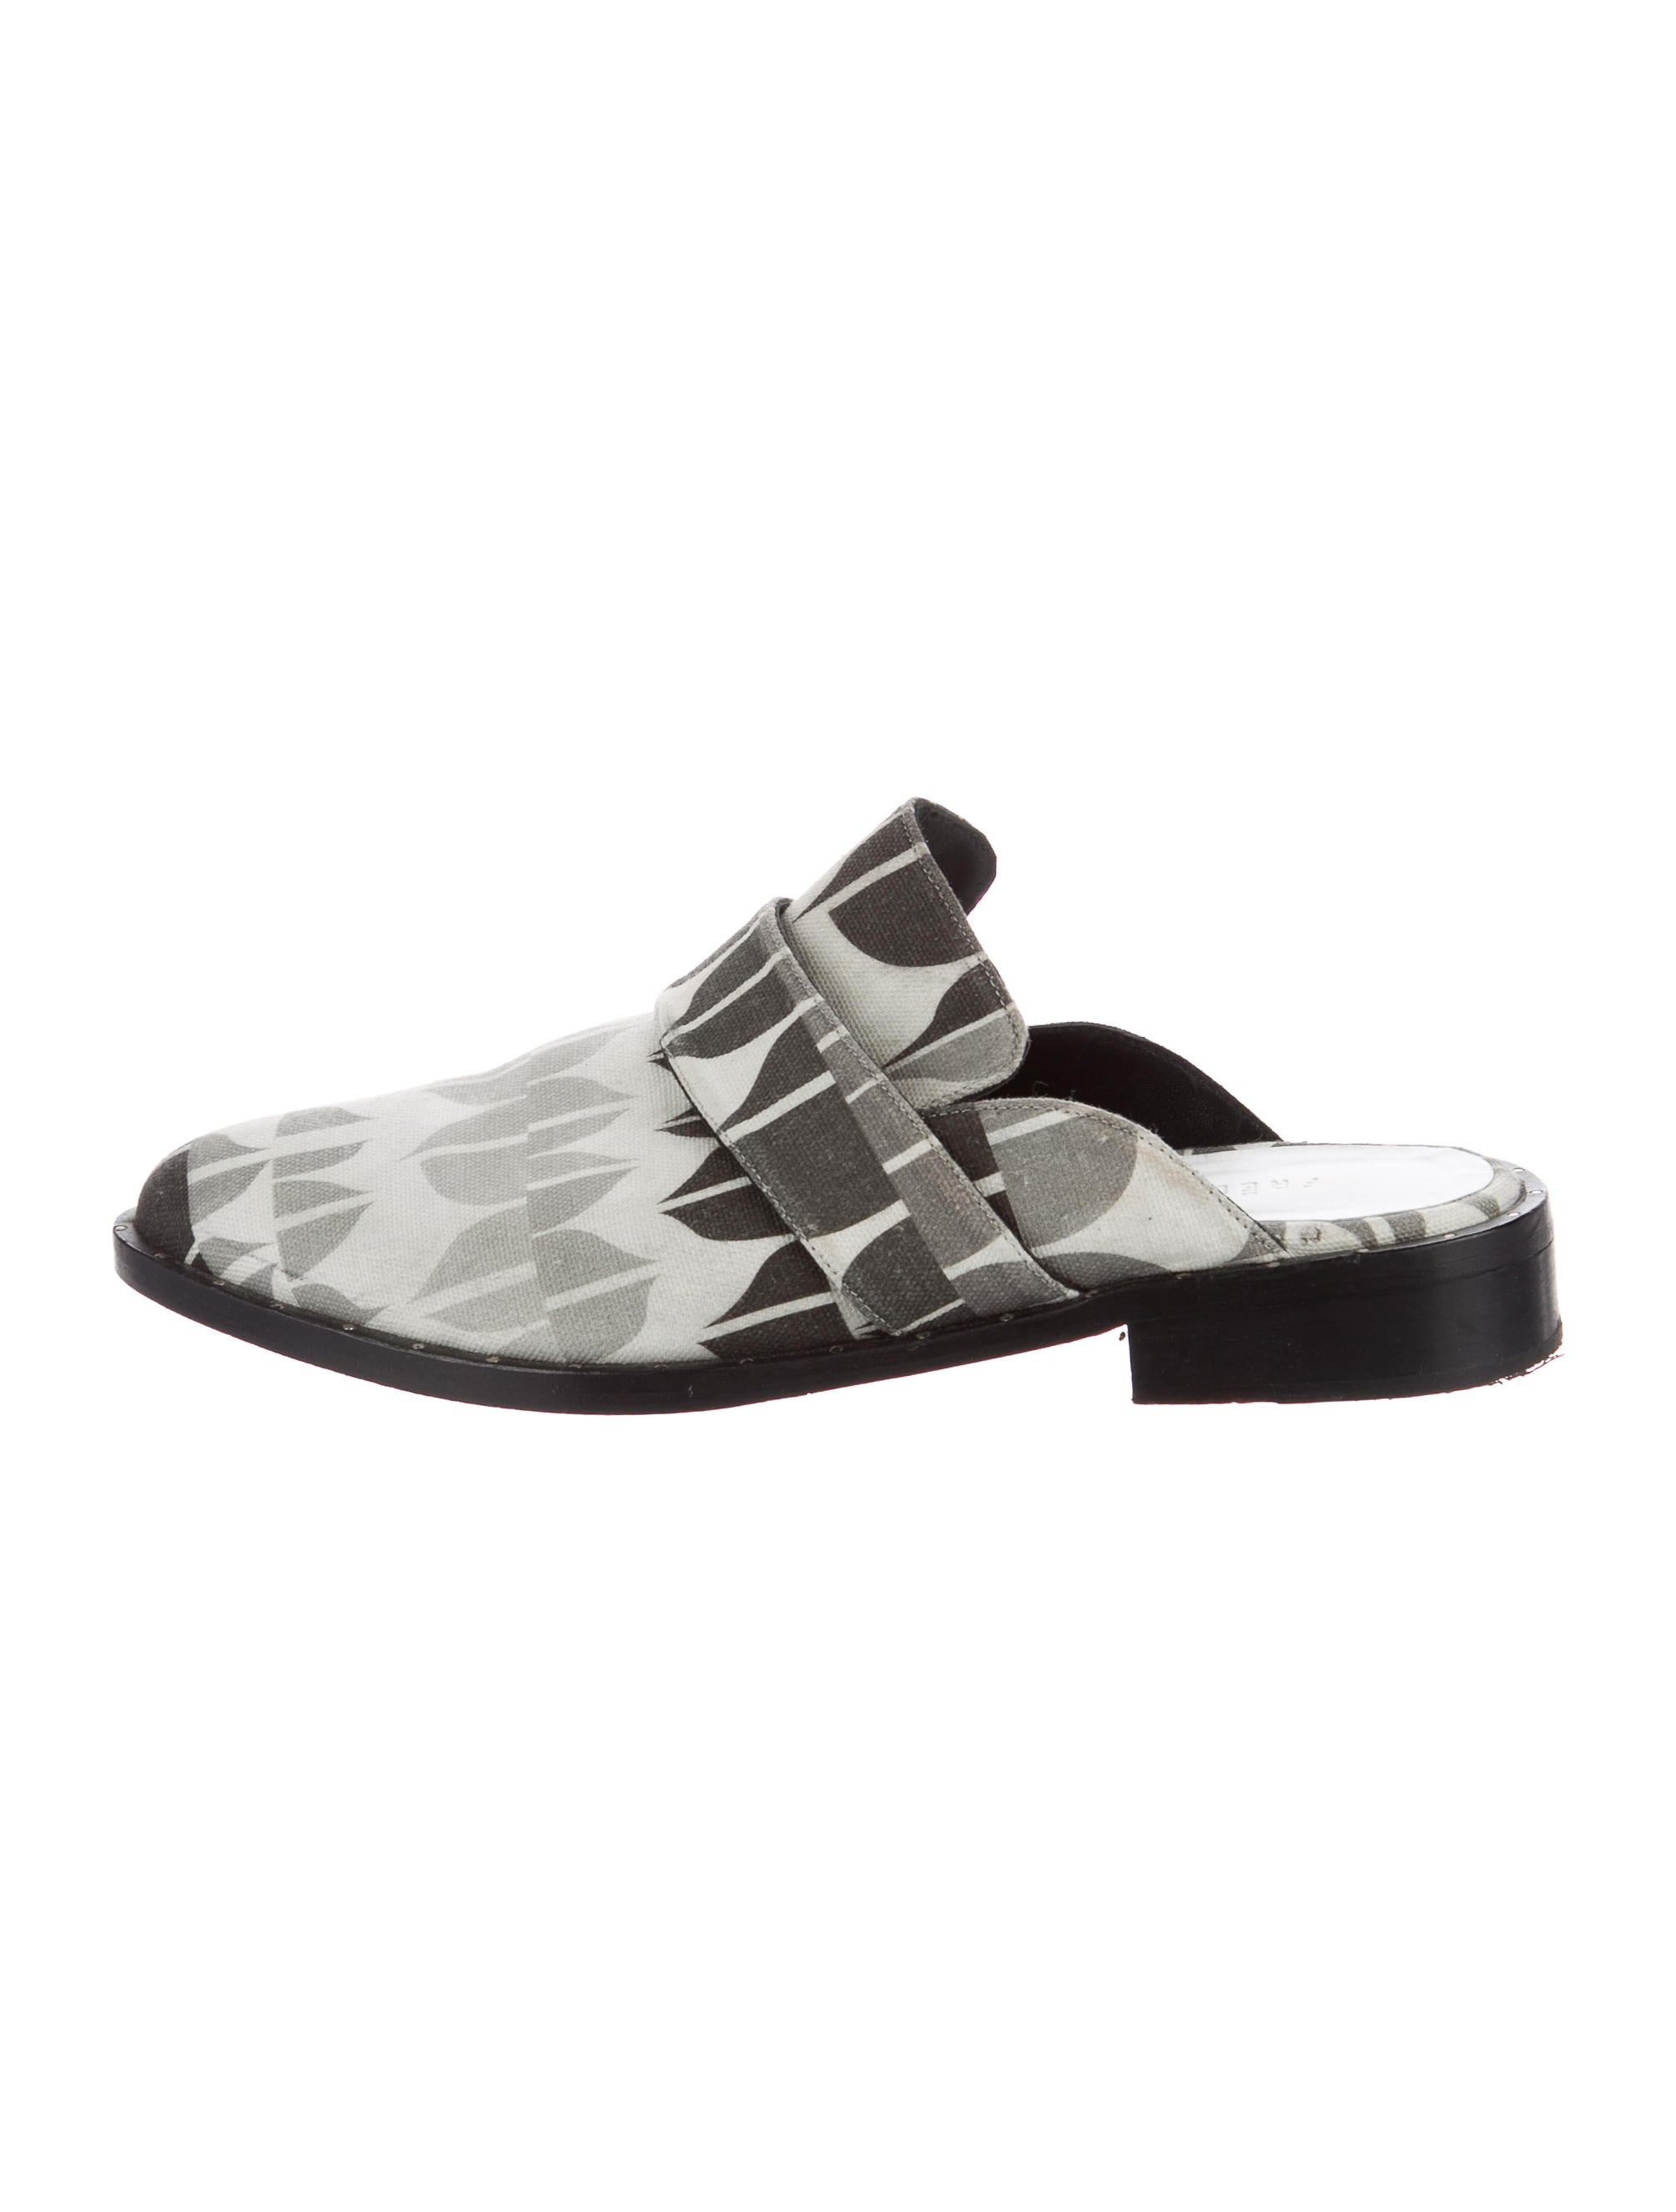 discount eastbay genuine sale online Freda Salvador Printed Canvas Mules cheap sale 2015 new 2a4DeL